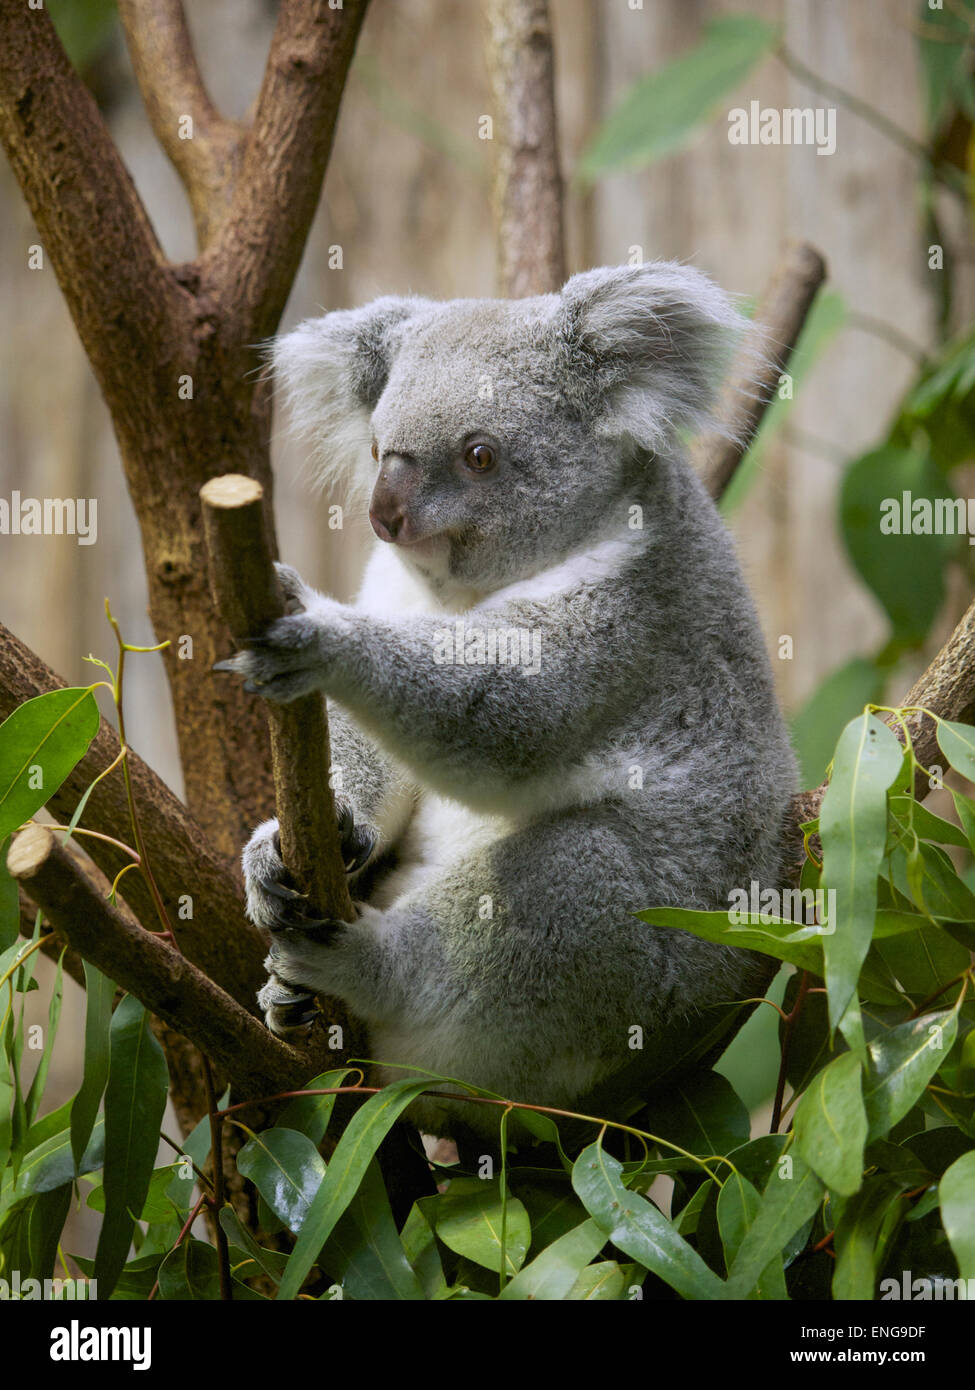 Koala in the Duisburg Zoo, Germany. There only are about 140 koalas outside of Australia, mainly because of their - Stock Image